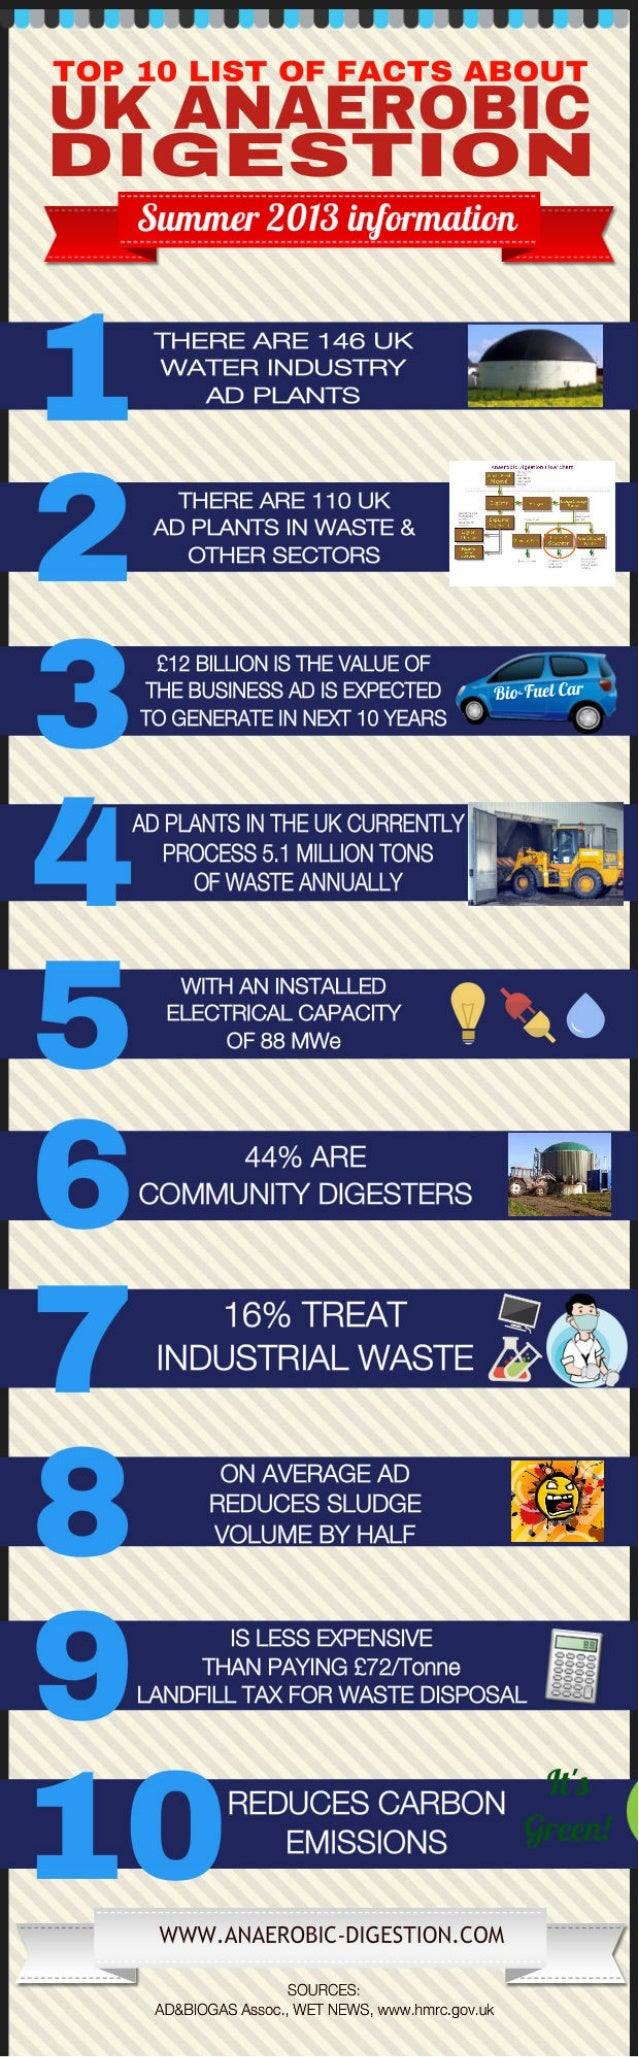 10 Facts About UK Anaerobic Digestion